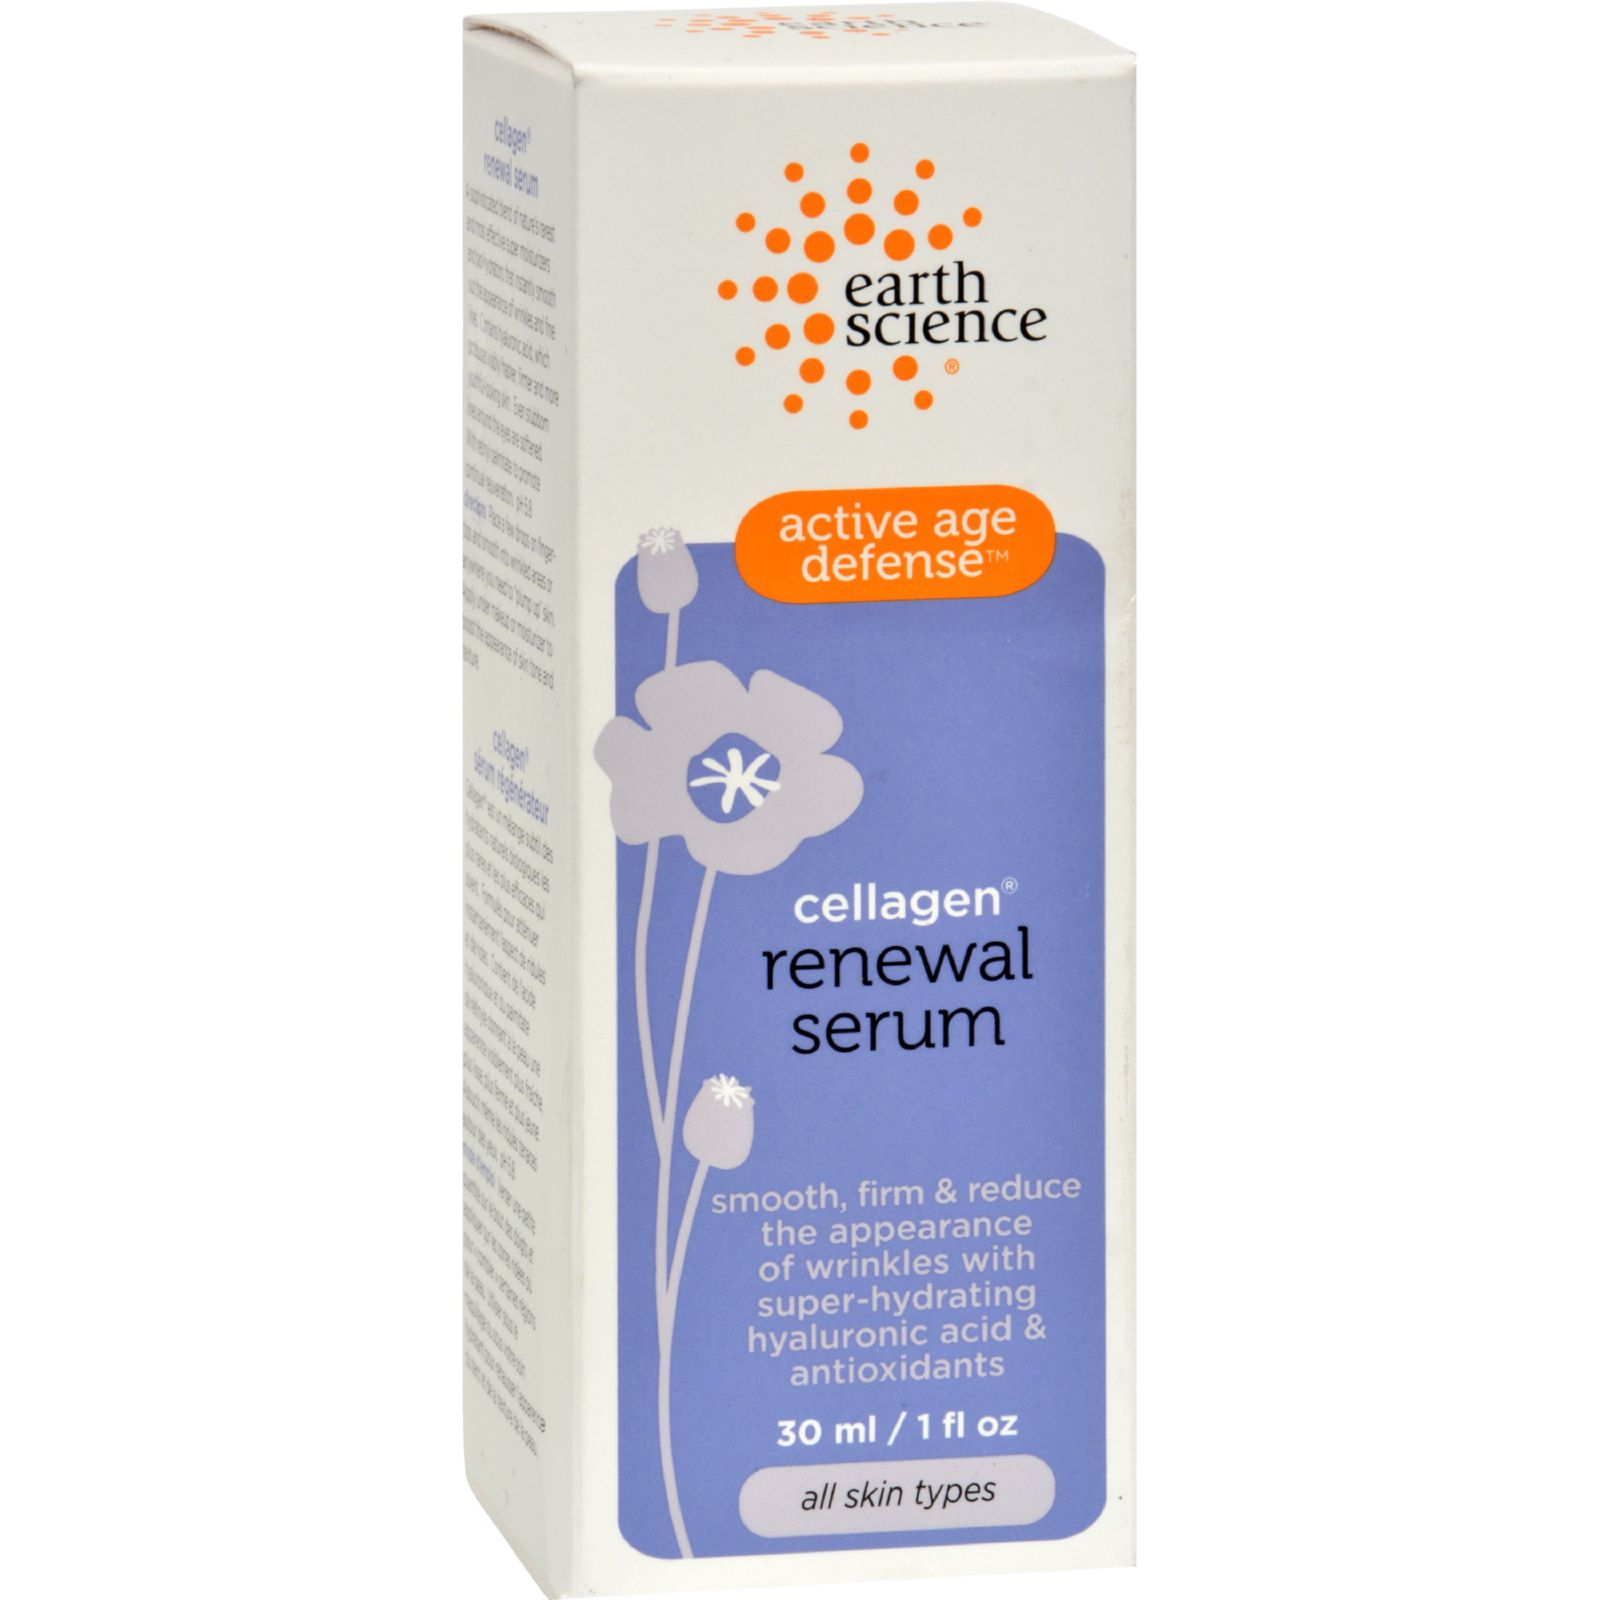 Active Age Defense Cellagen Renewal Serum - 1 oz. by Earth Science (pack of 1) 6 Pack Lac-Hydrin Five Moisturizing Lotion 8 Oz Each